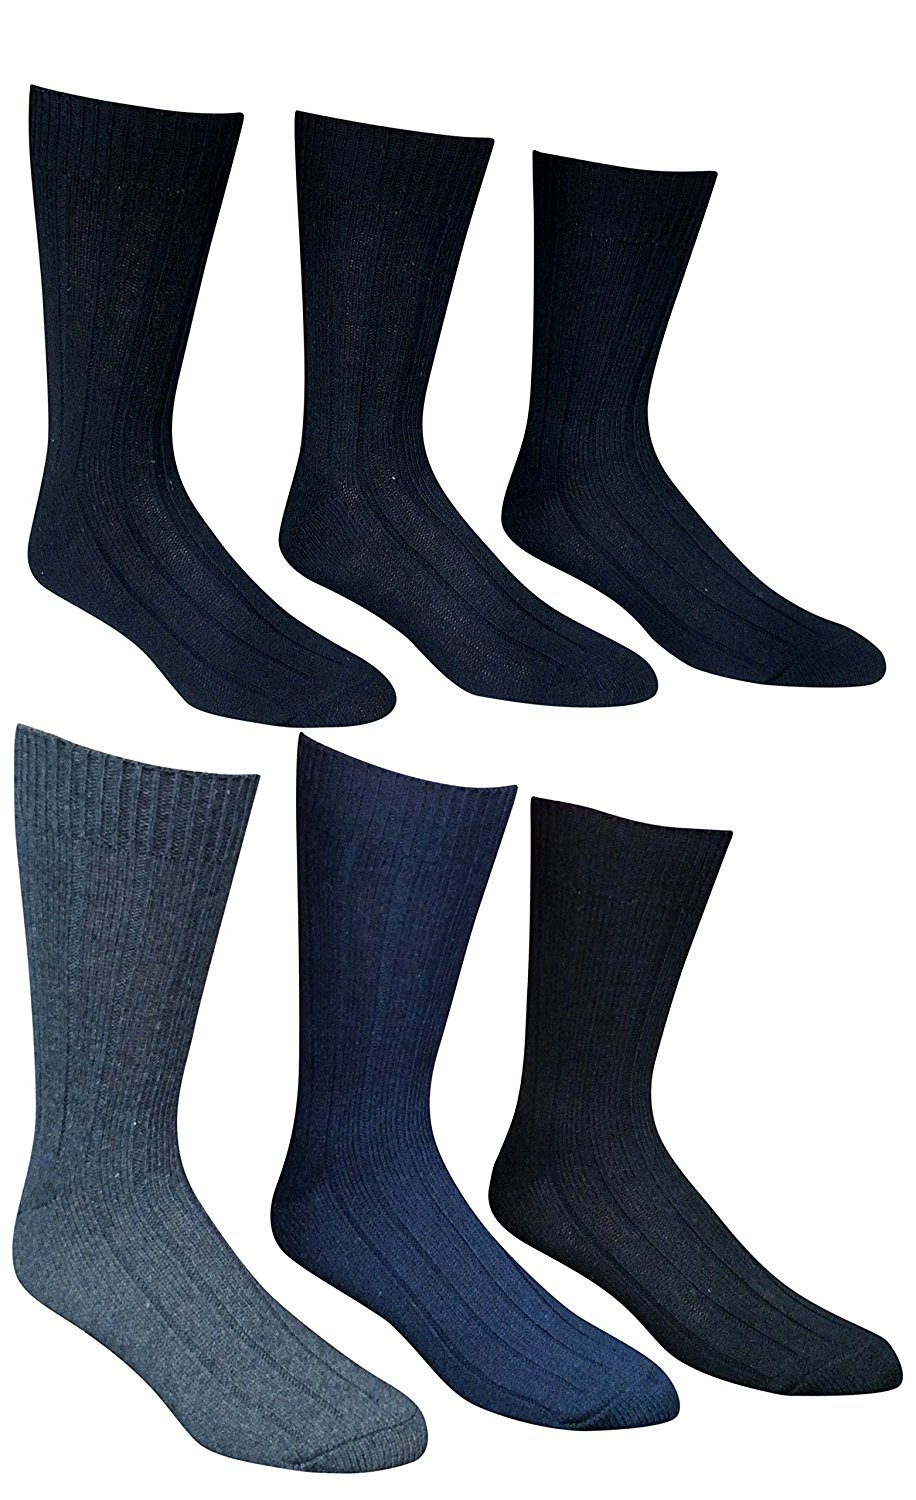 6 Pairs Of excell Mens Premium Winter Wool Socks With Cable Knit Design (1503) by Wool Socks